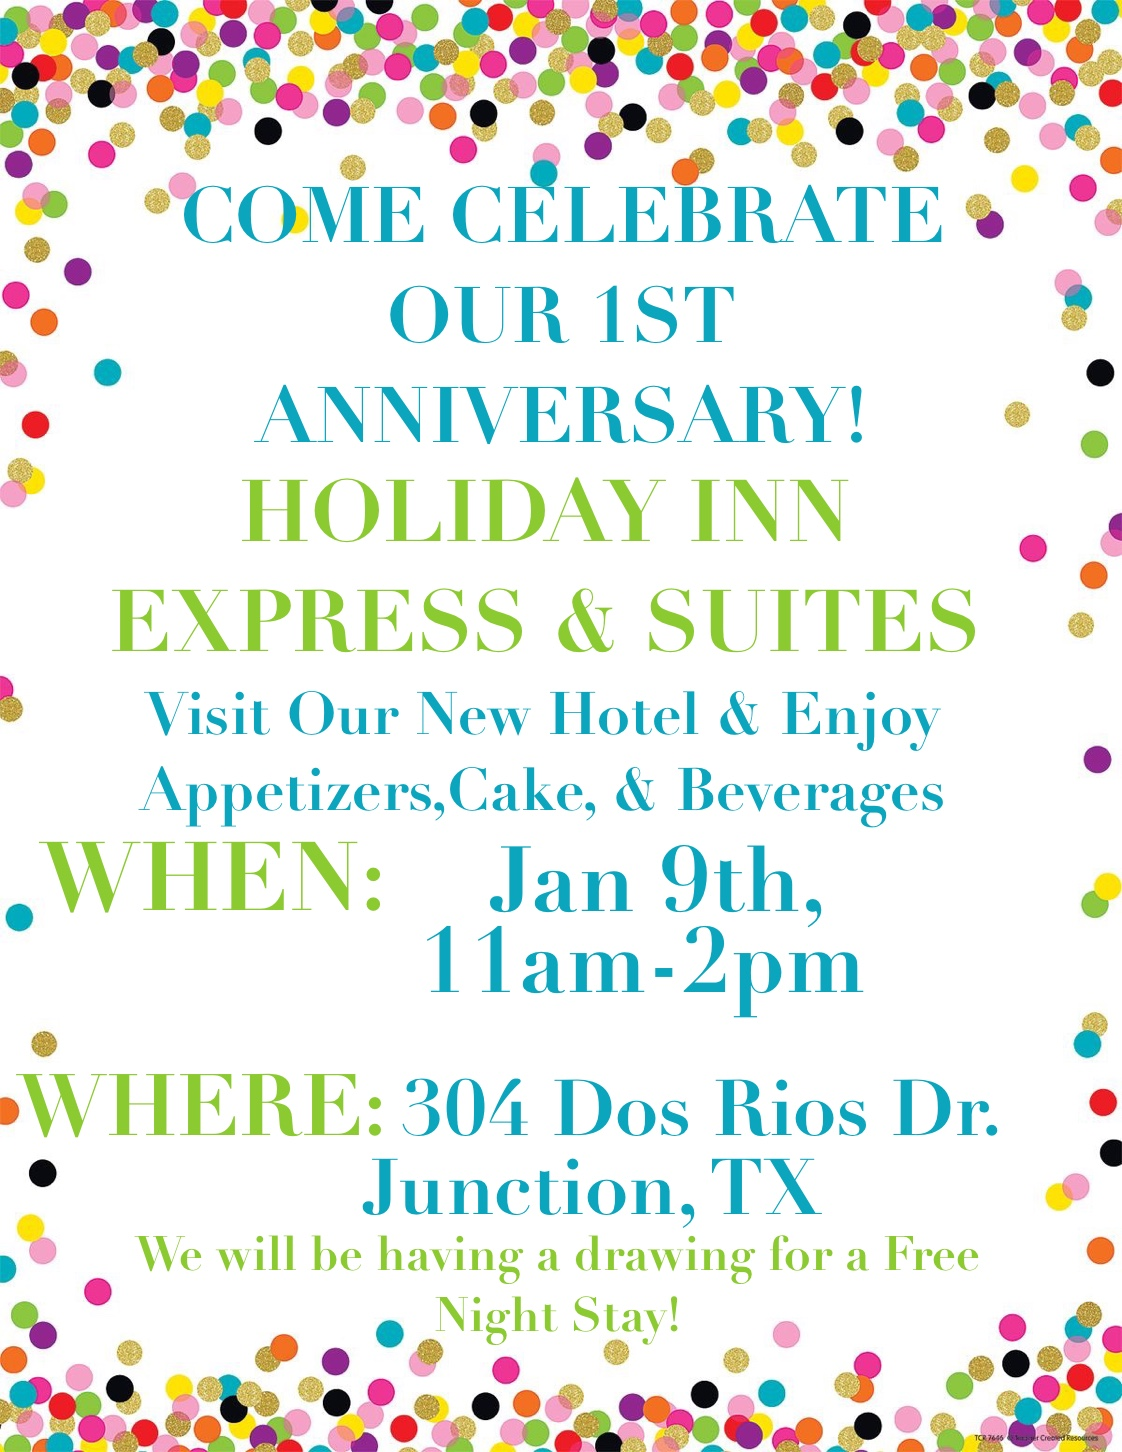 Holiday Inn Express & Suites Anniversary